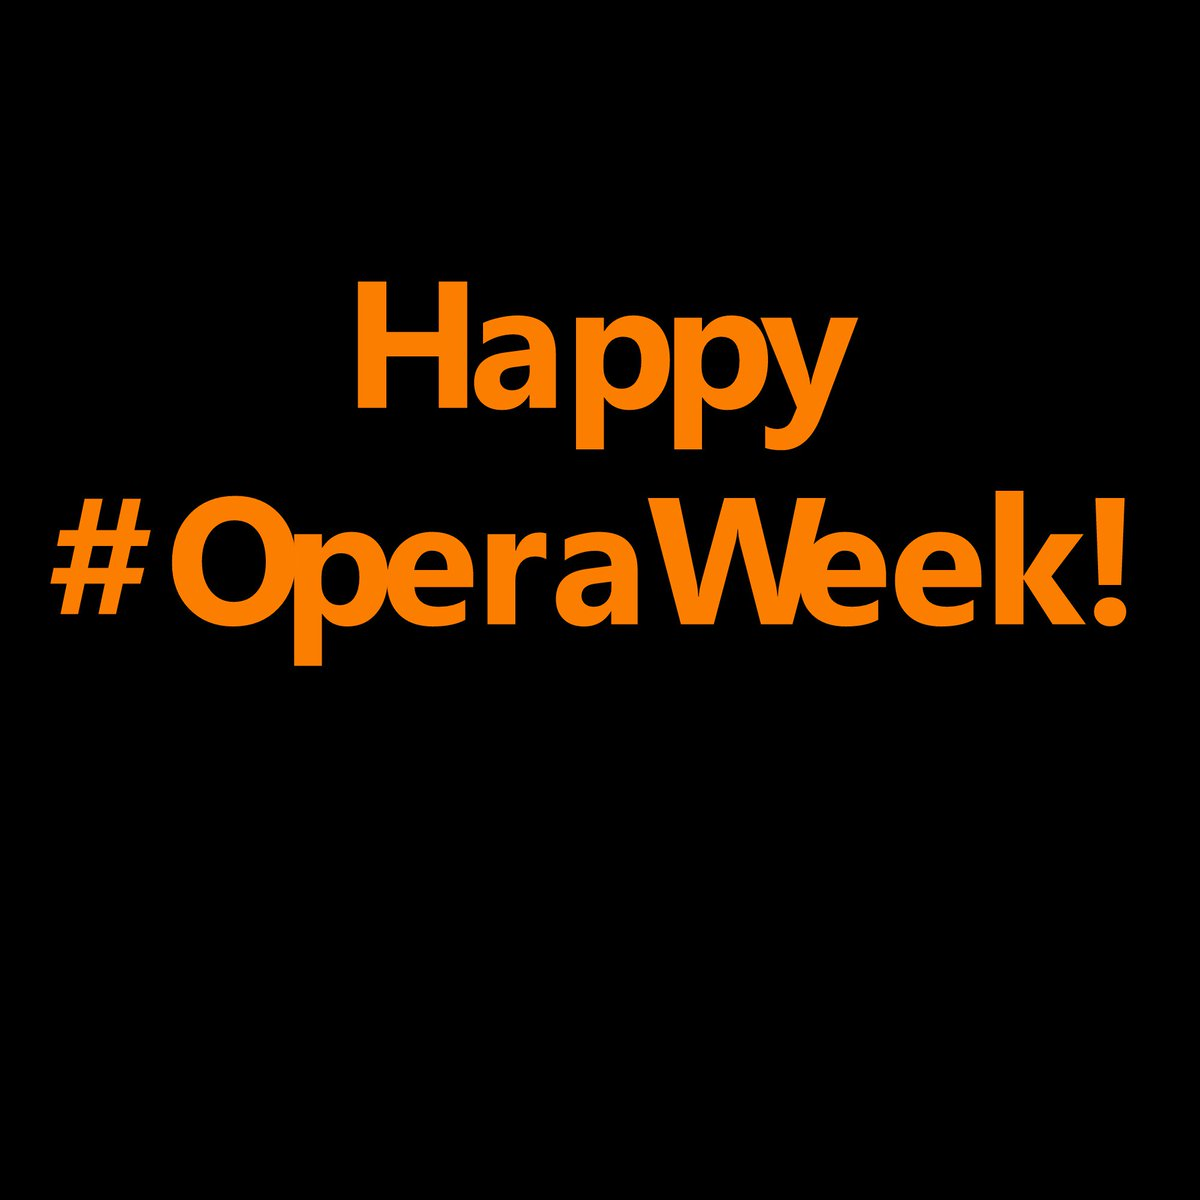 Happy National #OperaWeek! We are thrilled to be bringing you opera alongside our 10 community partners! https://t.co/7rILF3CPOt